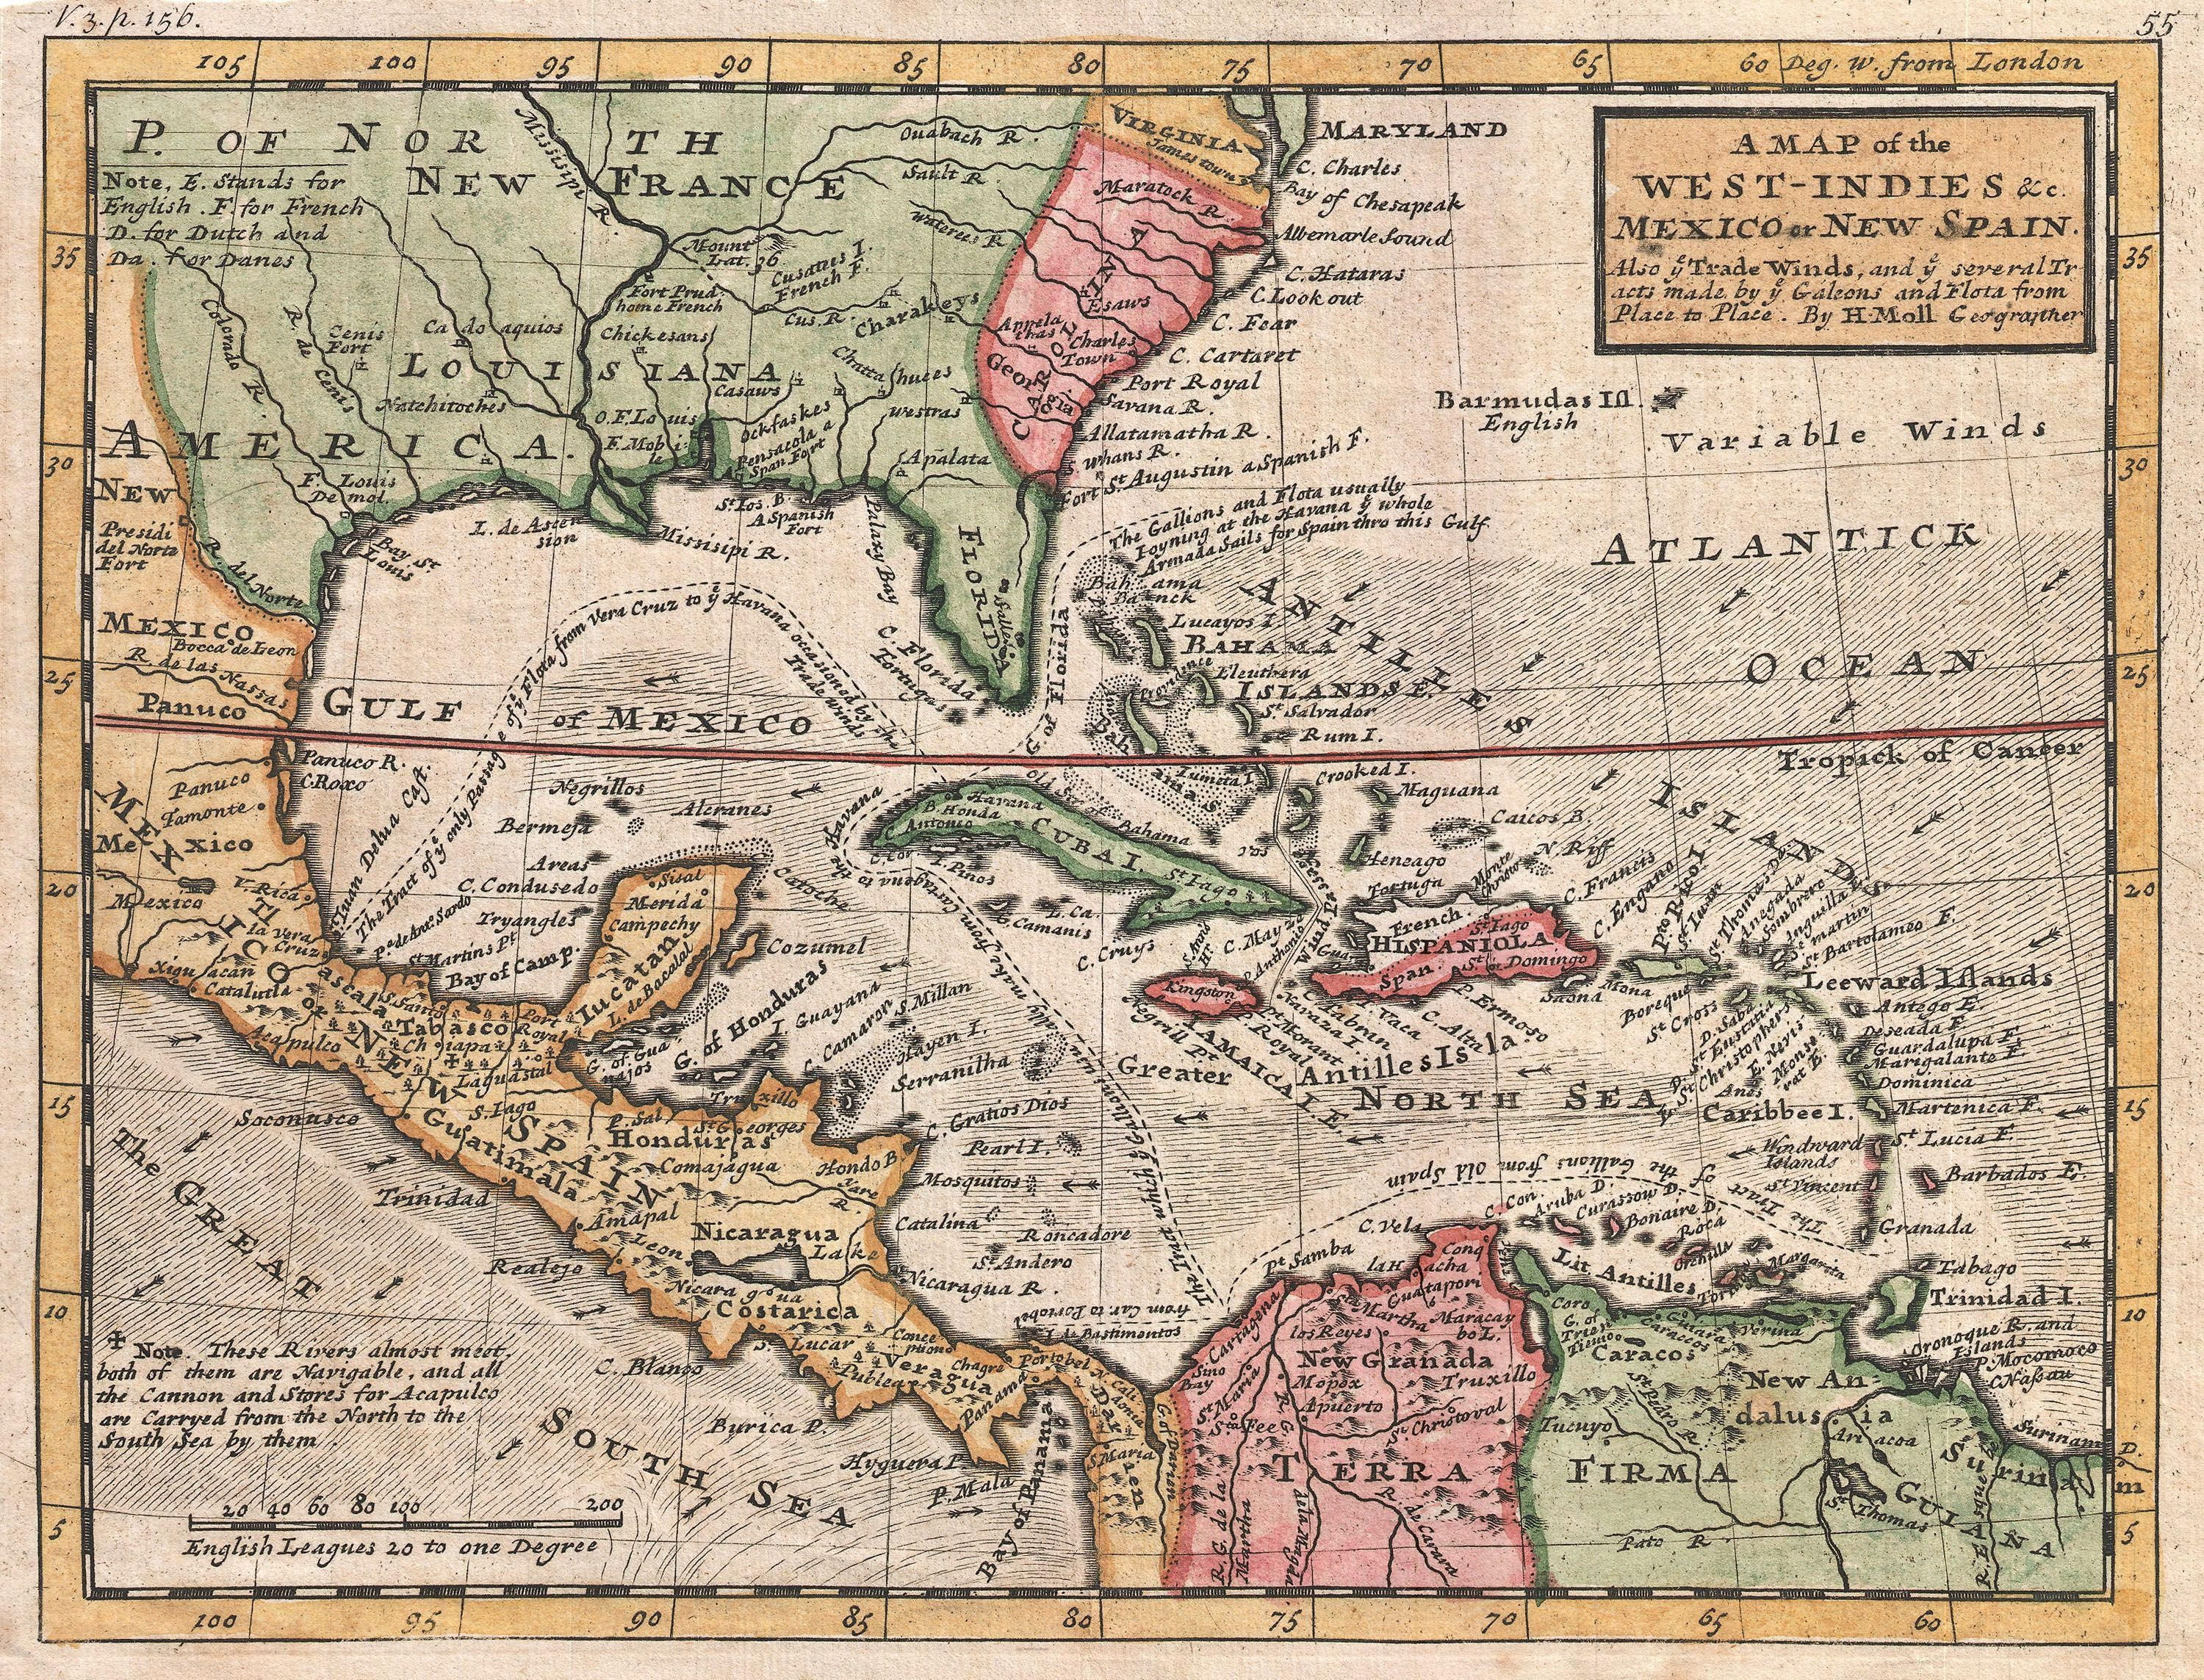 Best Antique Caribbean Maps Images On Pinterest Antique Maps - West indies central america 1763